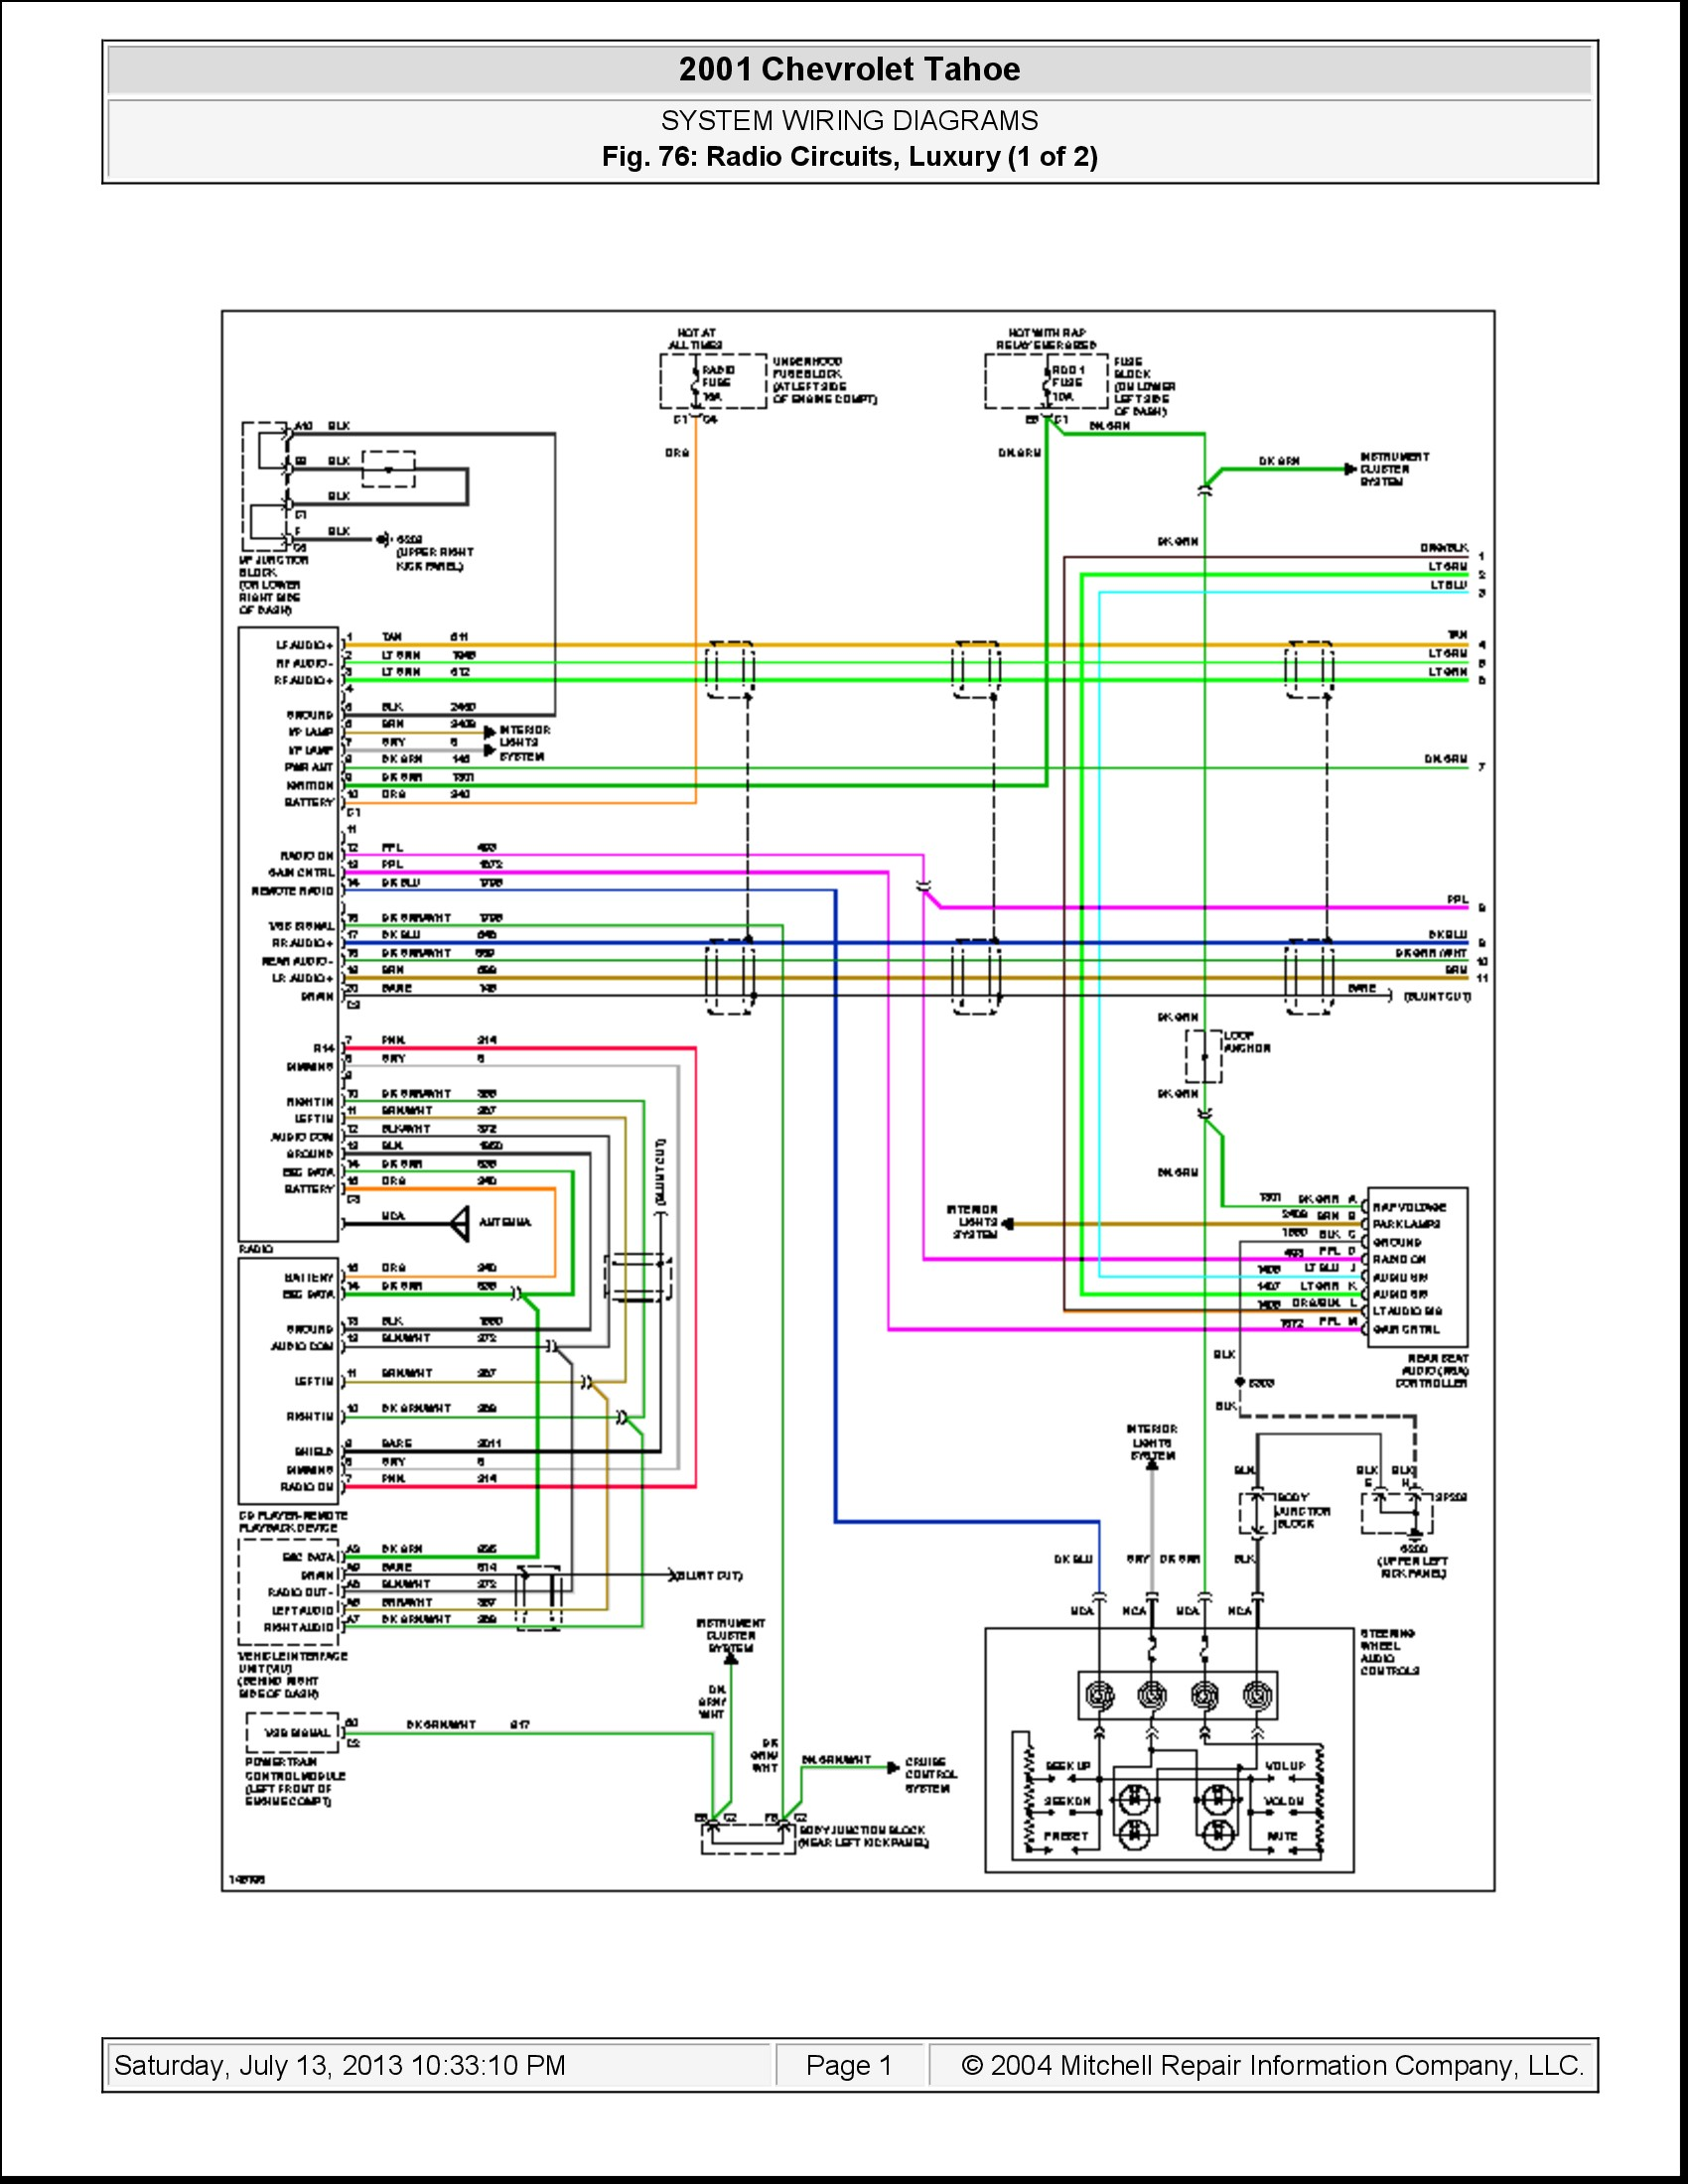 98 camry cd player wiring diagram electrical work wiring diagram u2022 rh  aglabs co 2001 Toyota Tacoma Electrical Diagrams 2012 Tacoma Stereo Wiring  Diagram